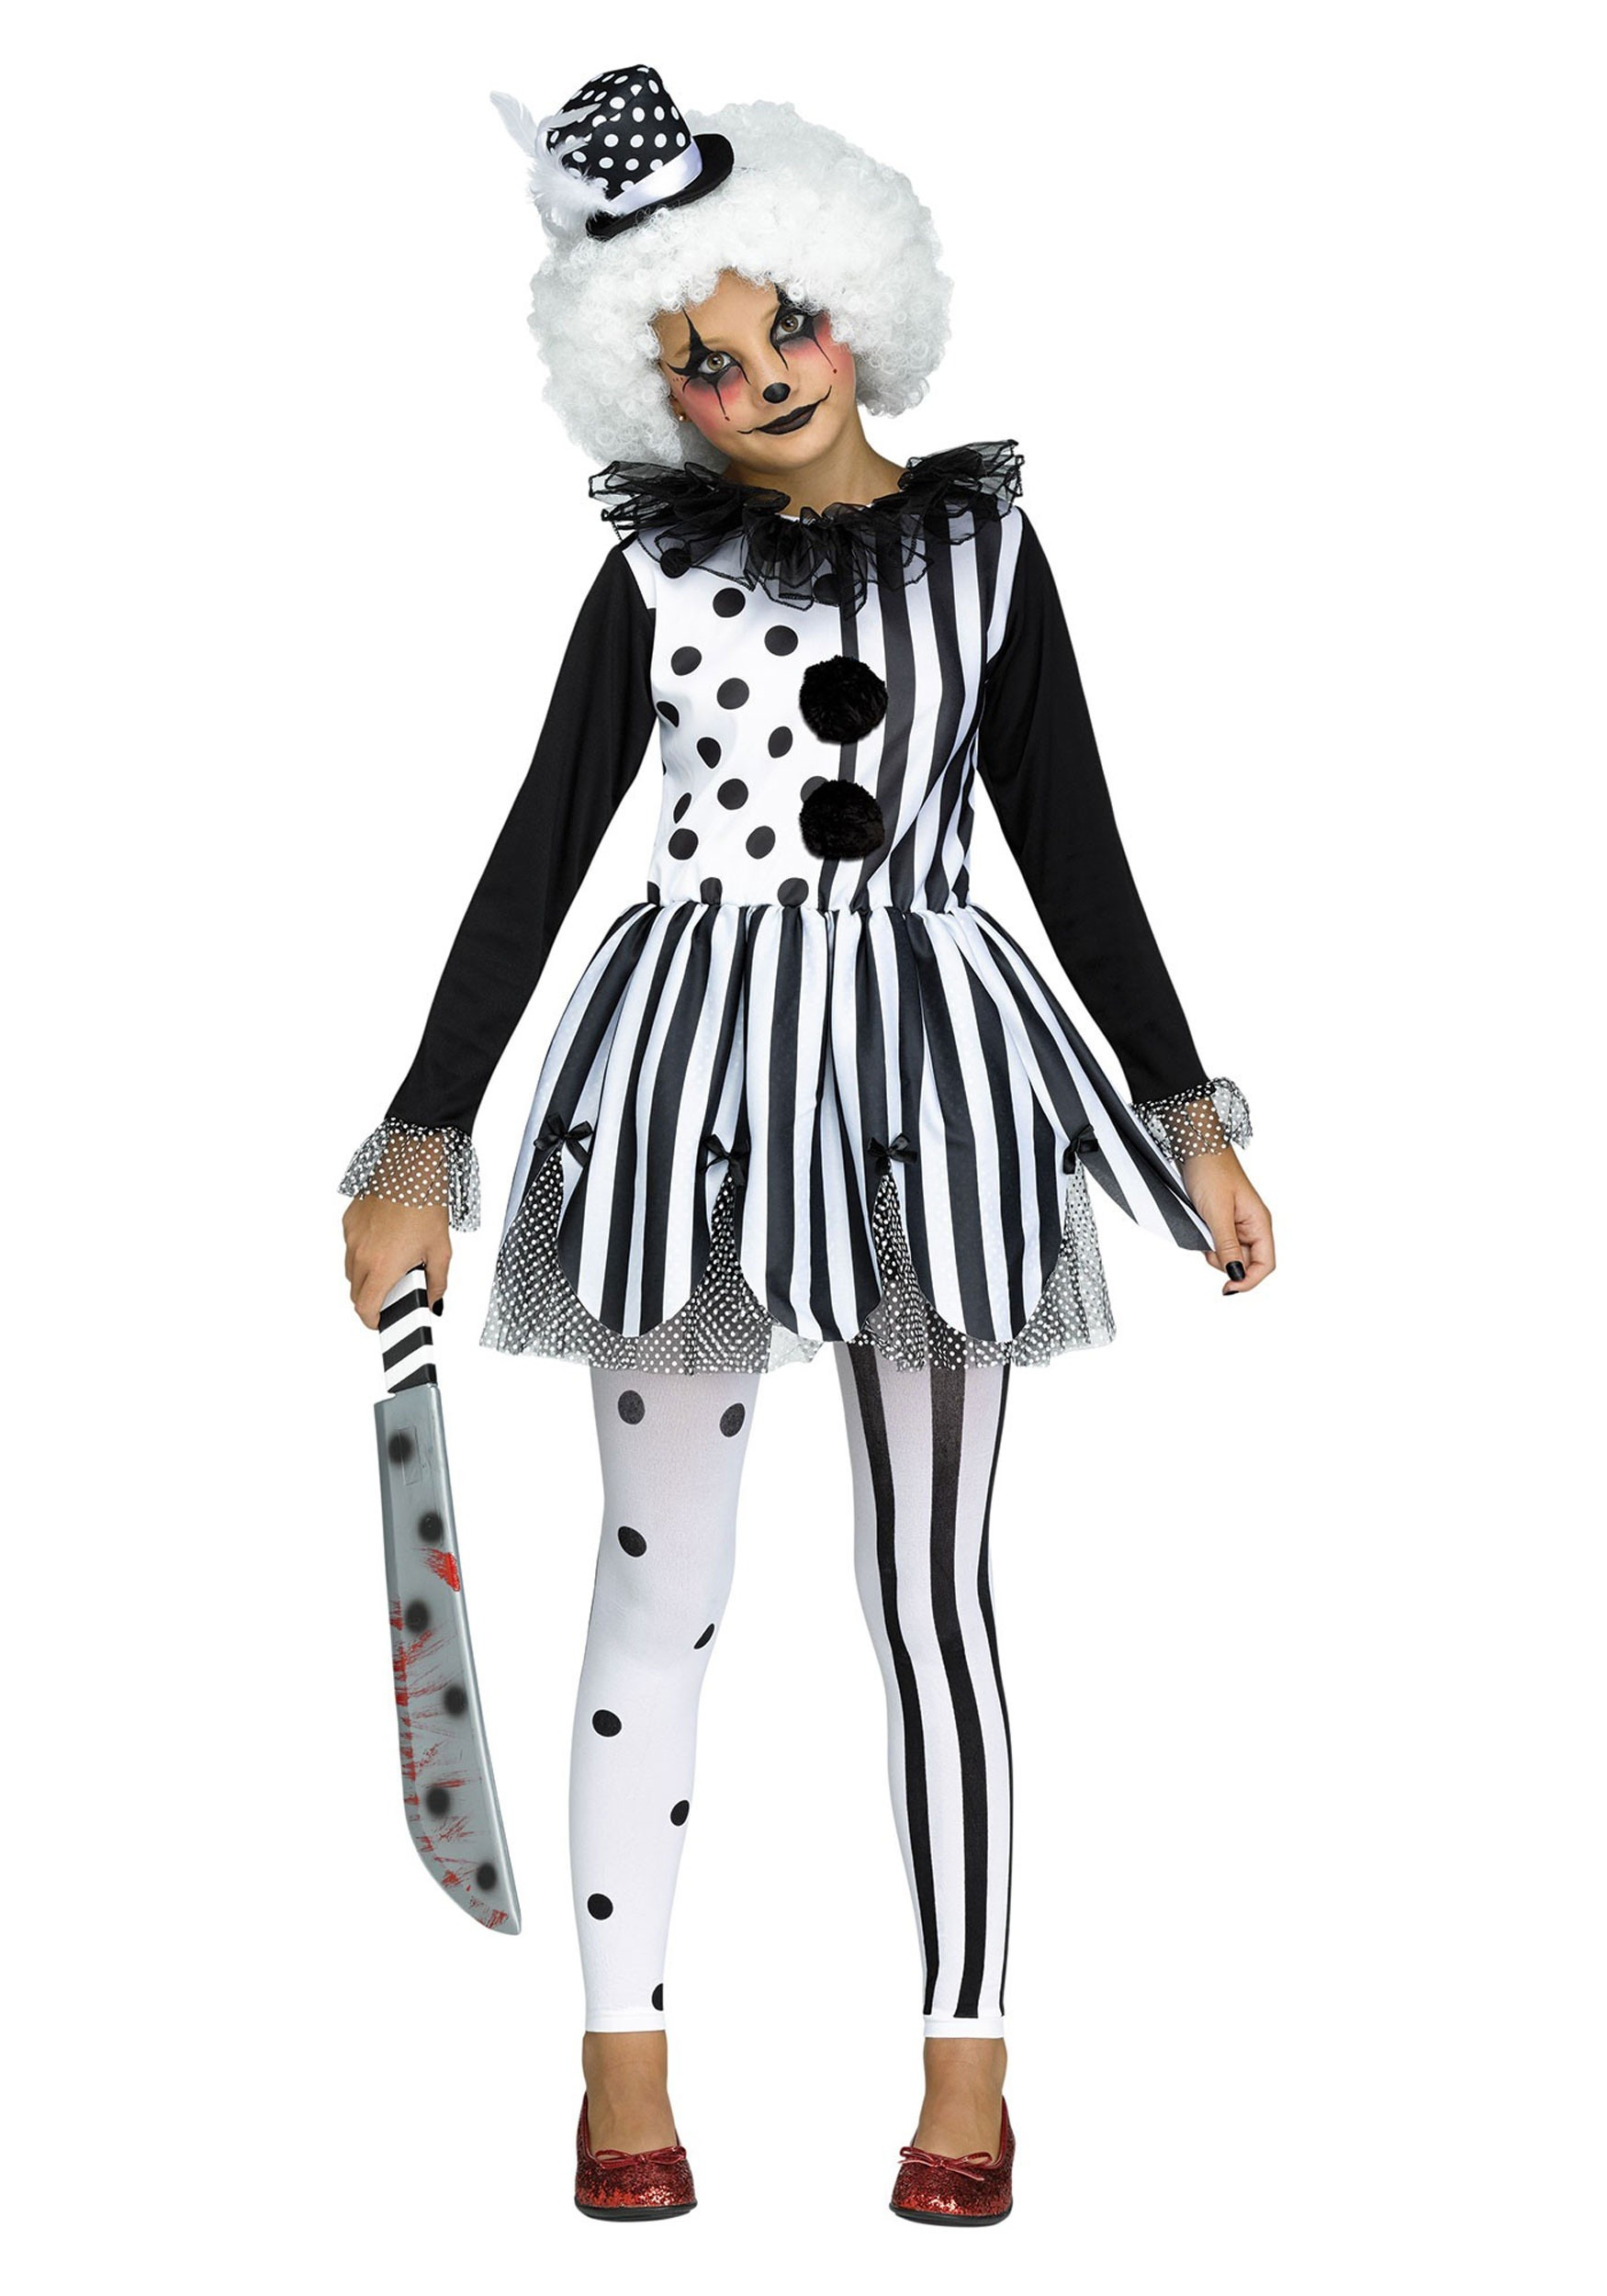 Results 61 - 120 of 470 for Kids Halloween Costumes 2017